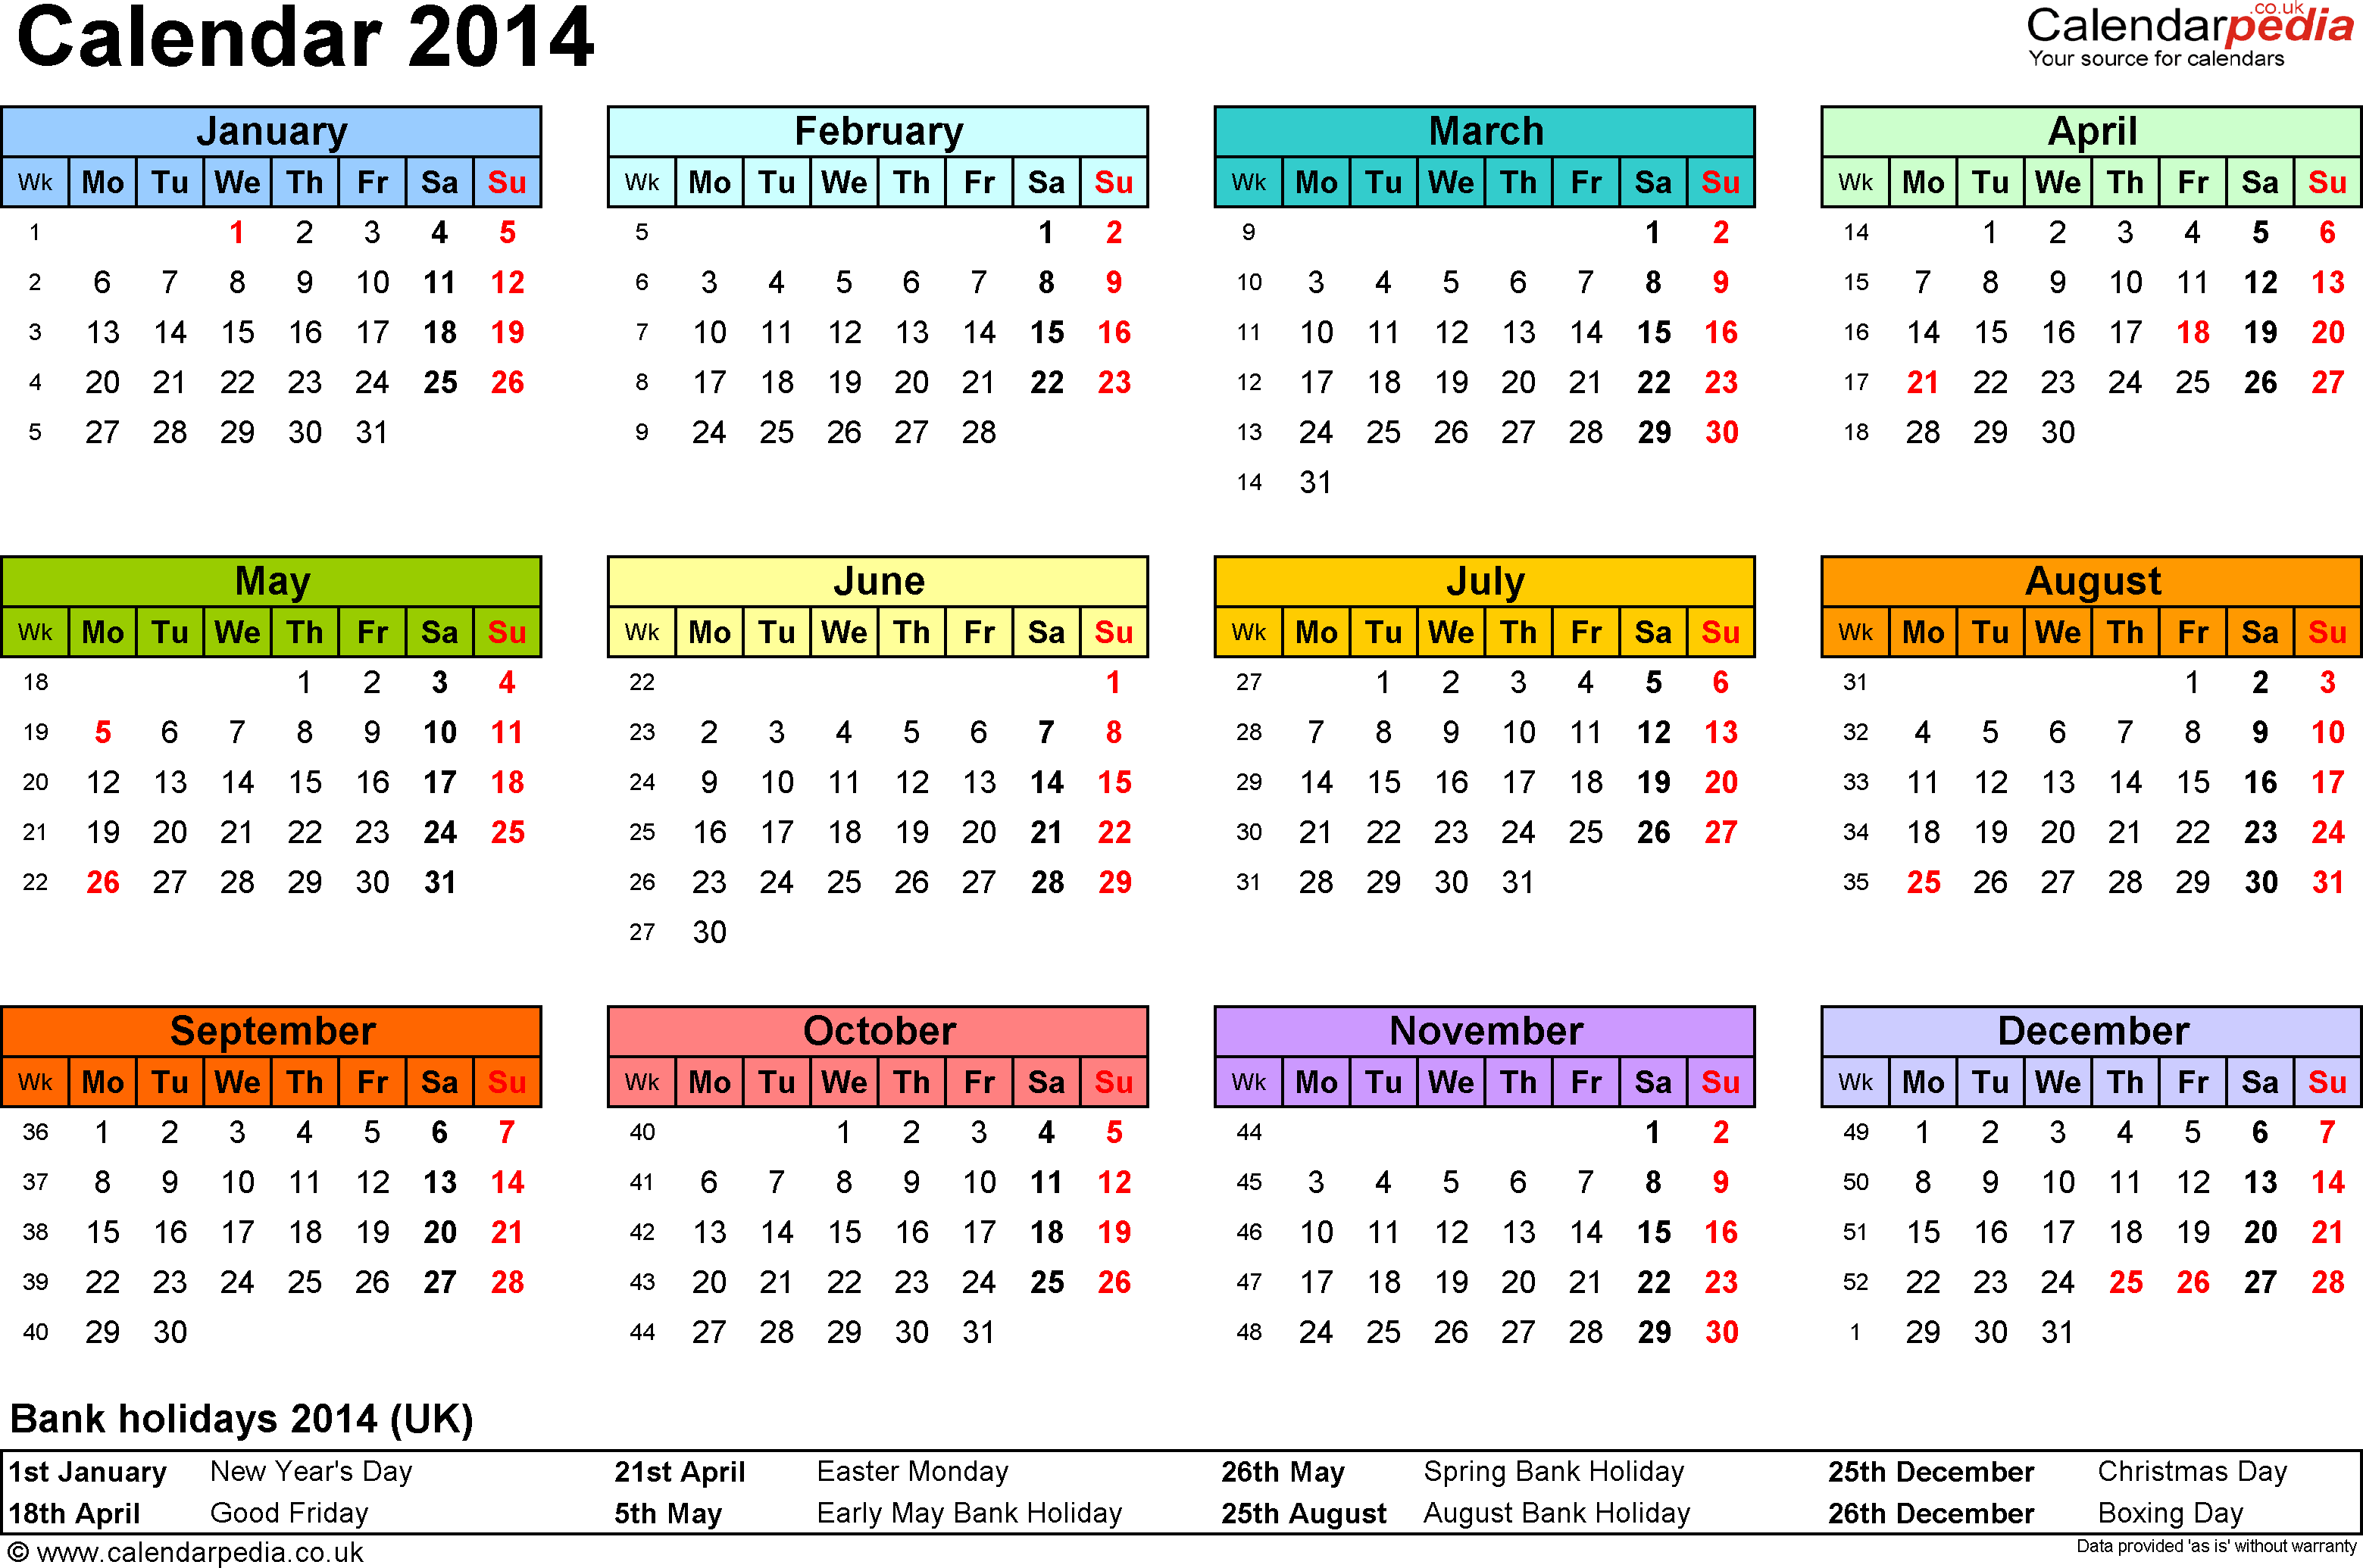 Template 7: Yearly calendar 2014 as Word template, landscape orientation, year overview in colour, 1 page